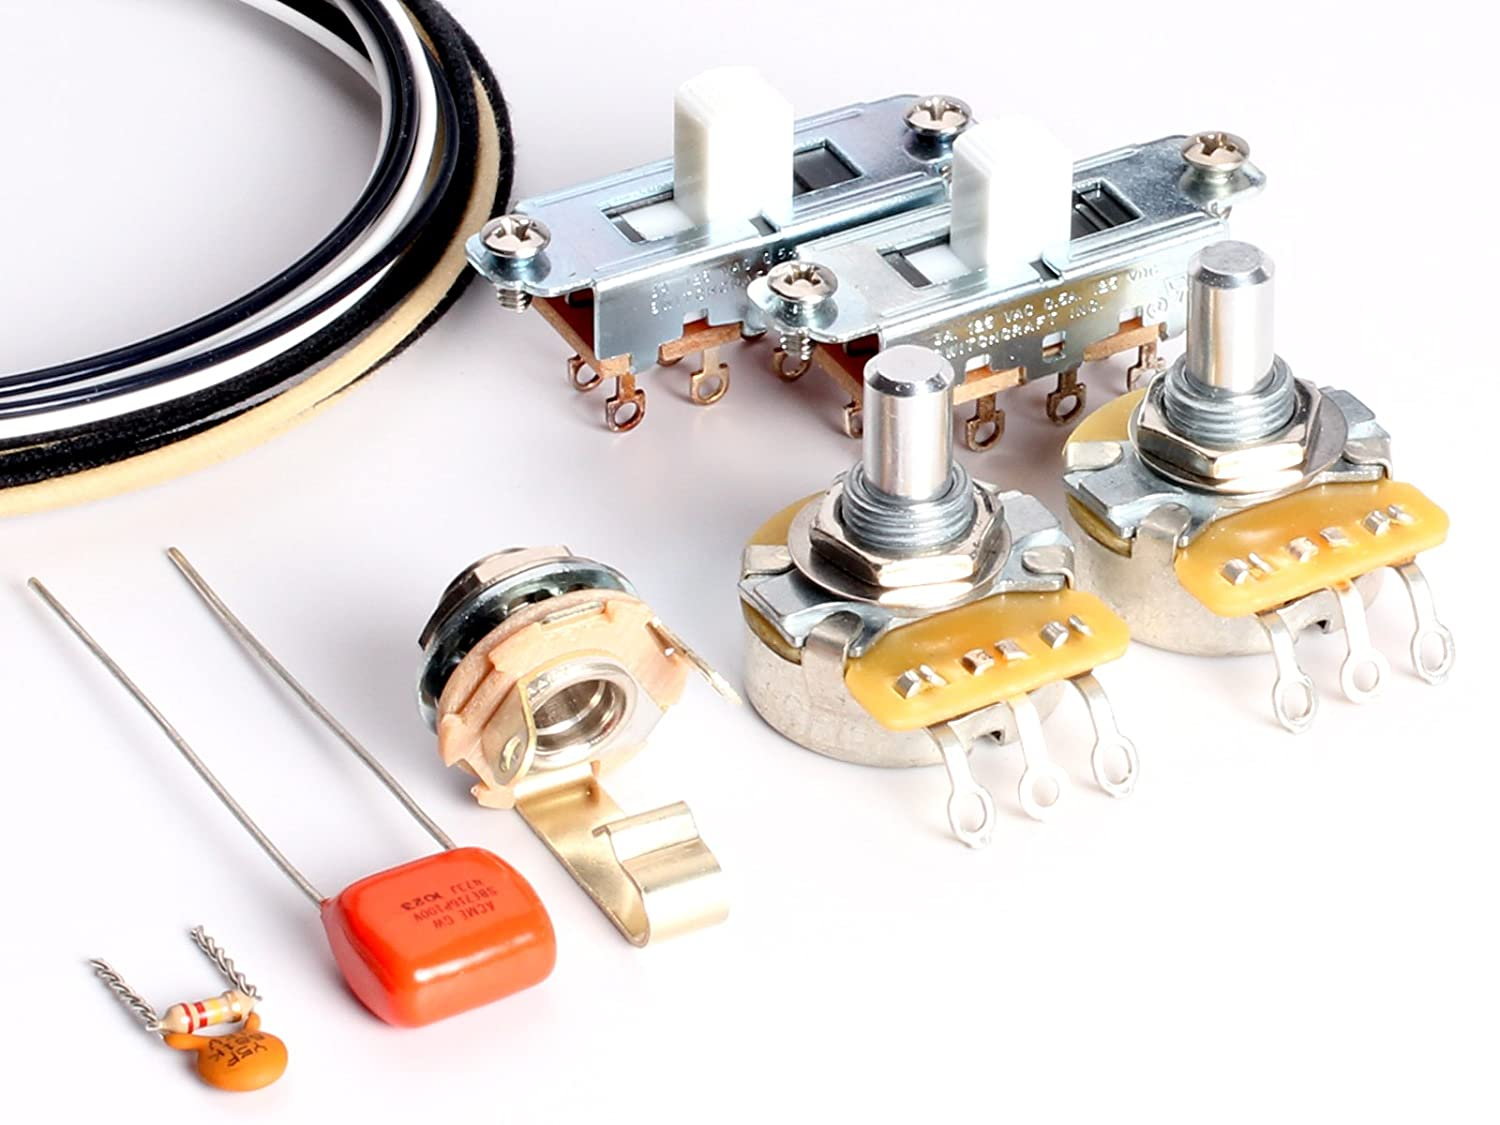 Fantastic Toneshaper Guitar Wiring Kit For Fender Mustang White Switches Wiring Digital Resources Nekoutcompassionincorg